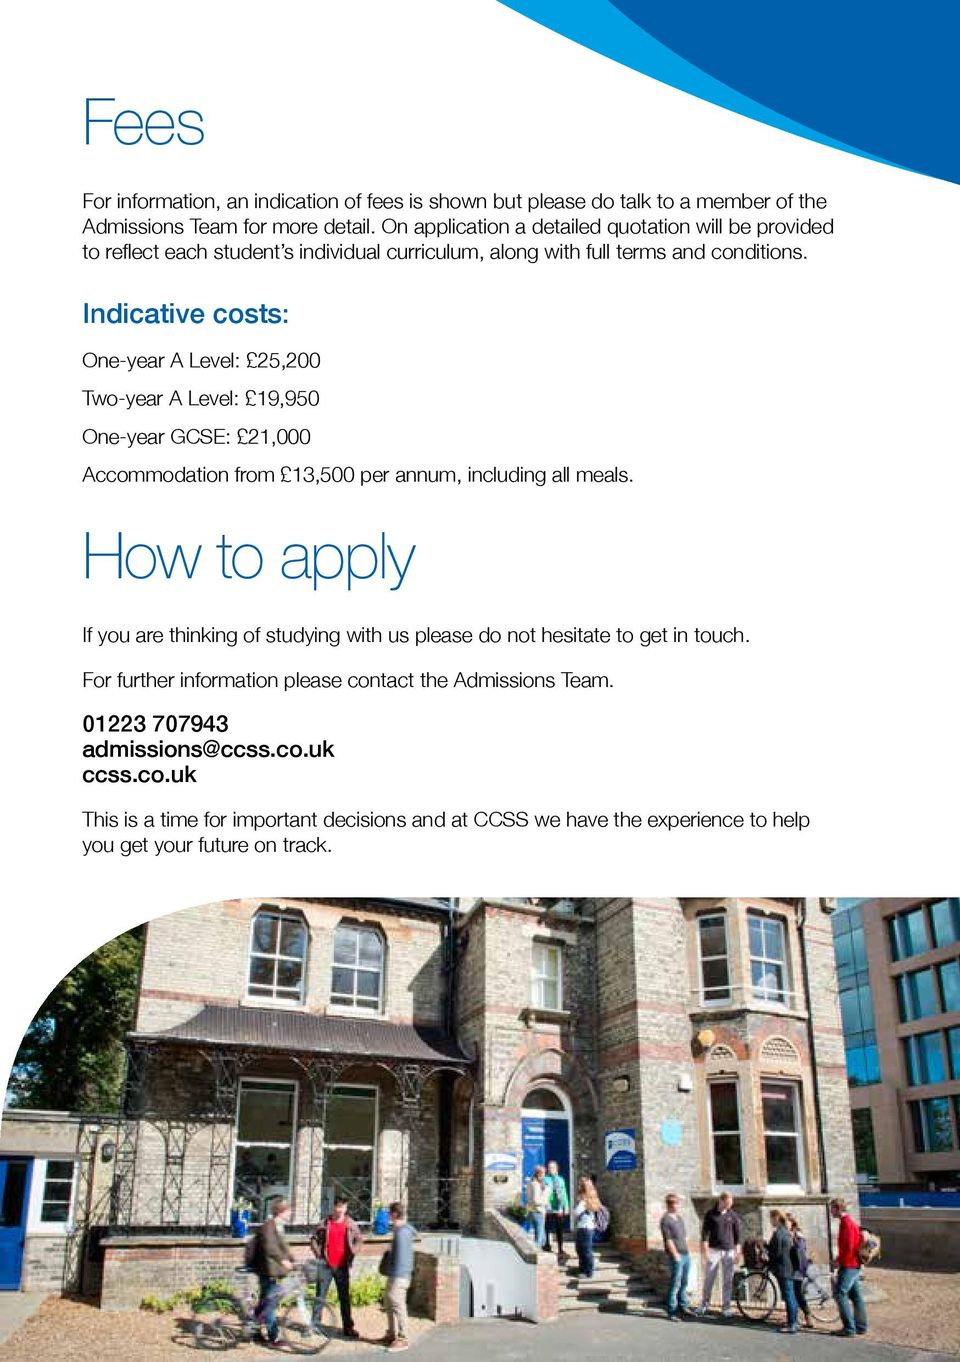 Indicative costs: One-year A Level: 25,200 Two-year A Level: 19,950 One-year GCSE: 21,000 Accommodation from 13,500 per annum, including all meals.